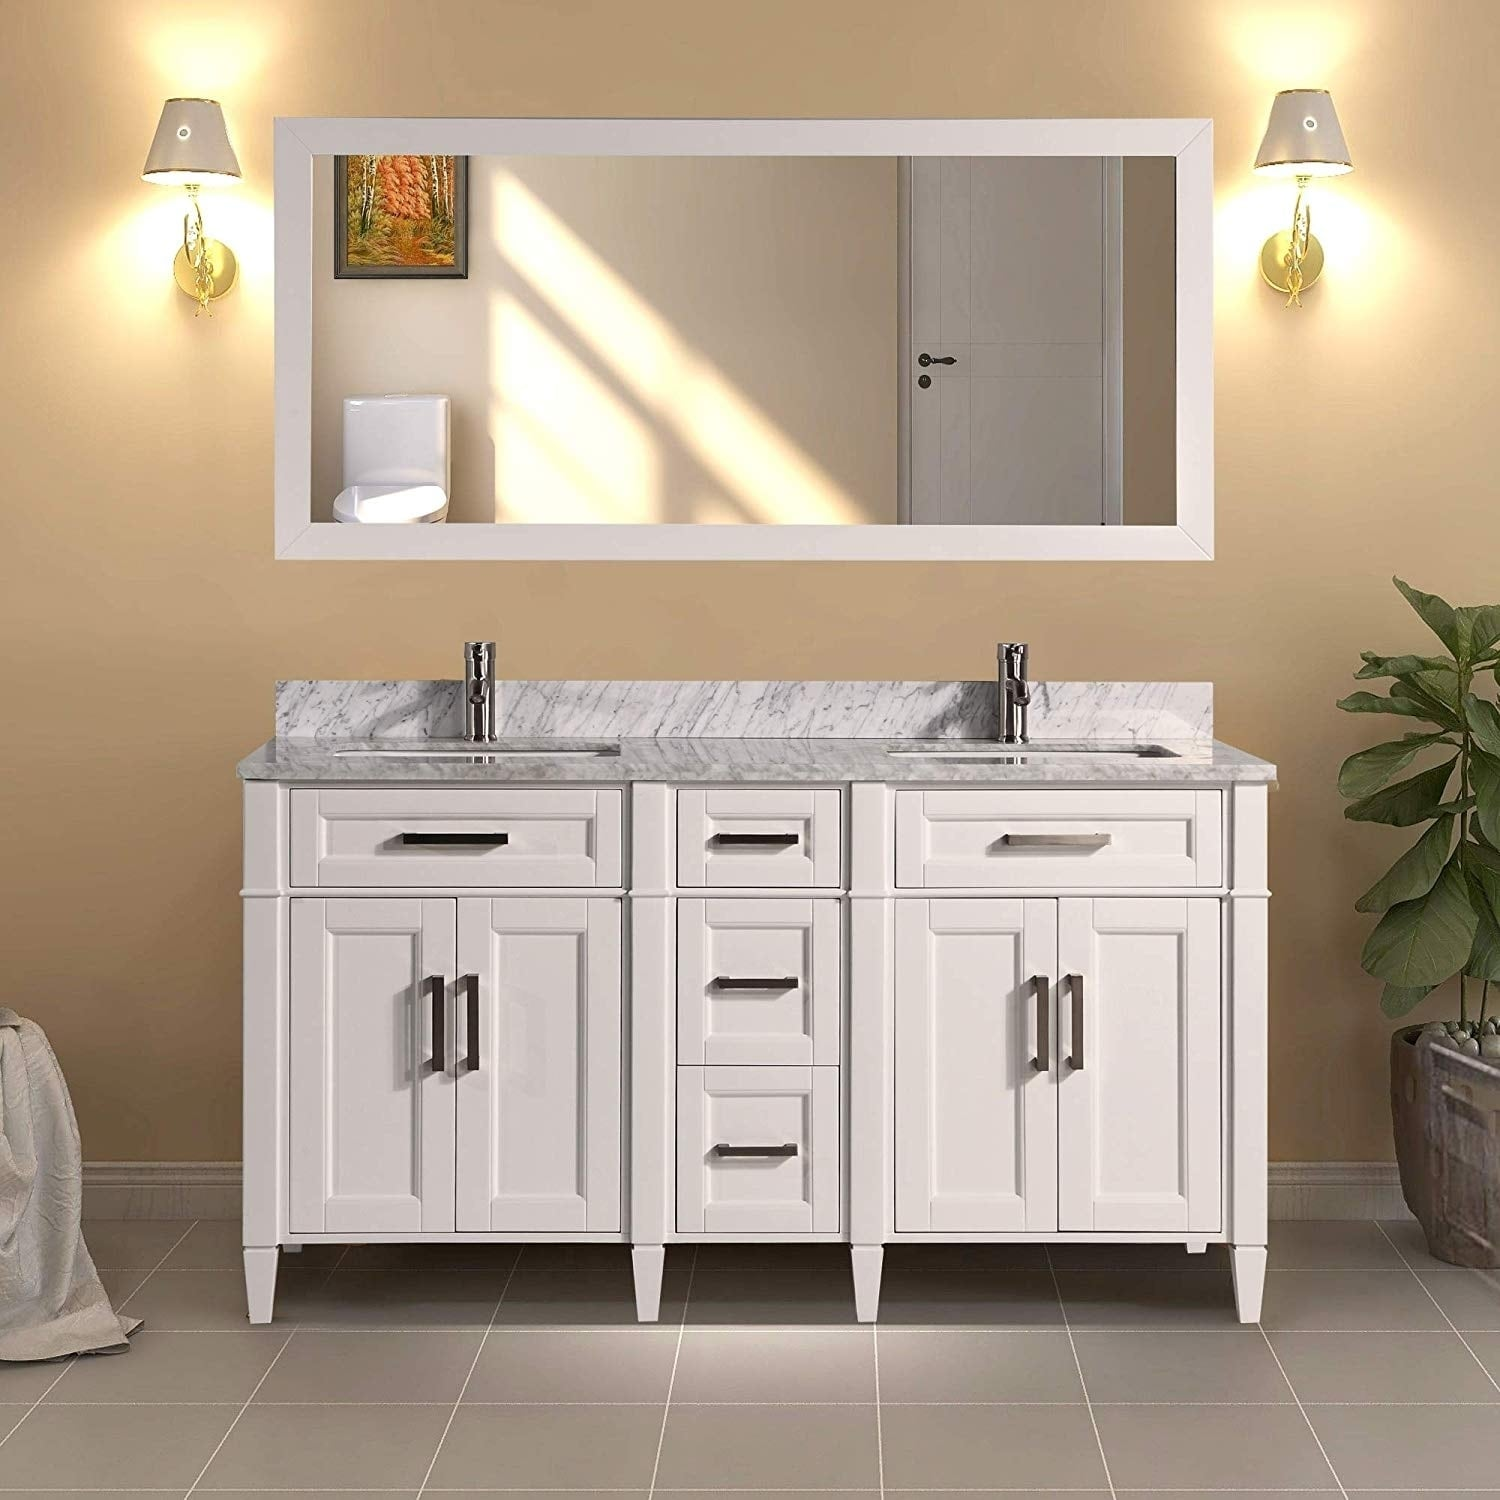 Vanity Art 60 Inch Double Sink Bathroom Vanity Set Carrara Marble Stone Top Soft Closing Doors Undermount Sink With Free Mirror On Sale Overstock 12364442